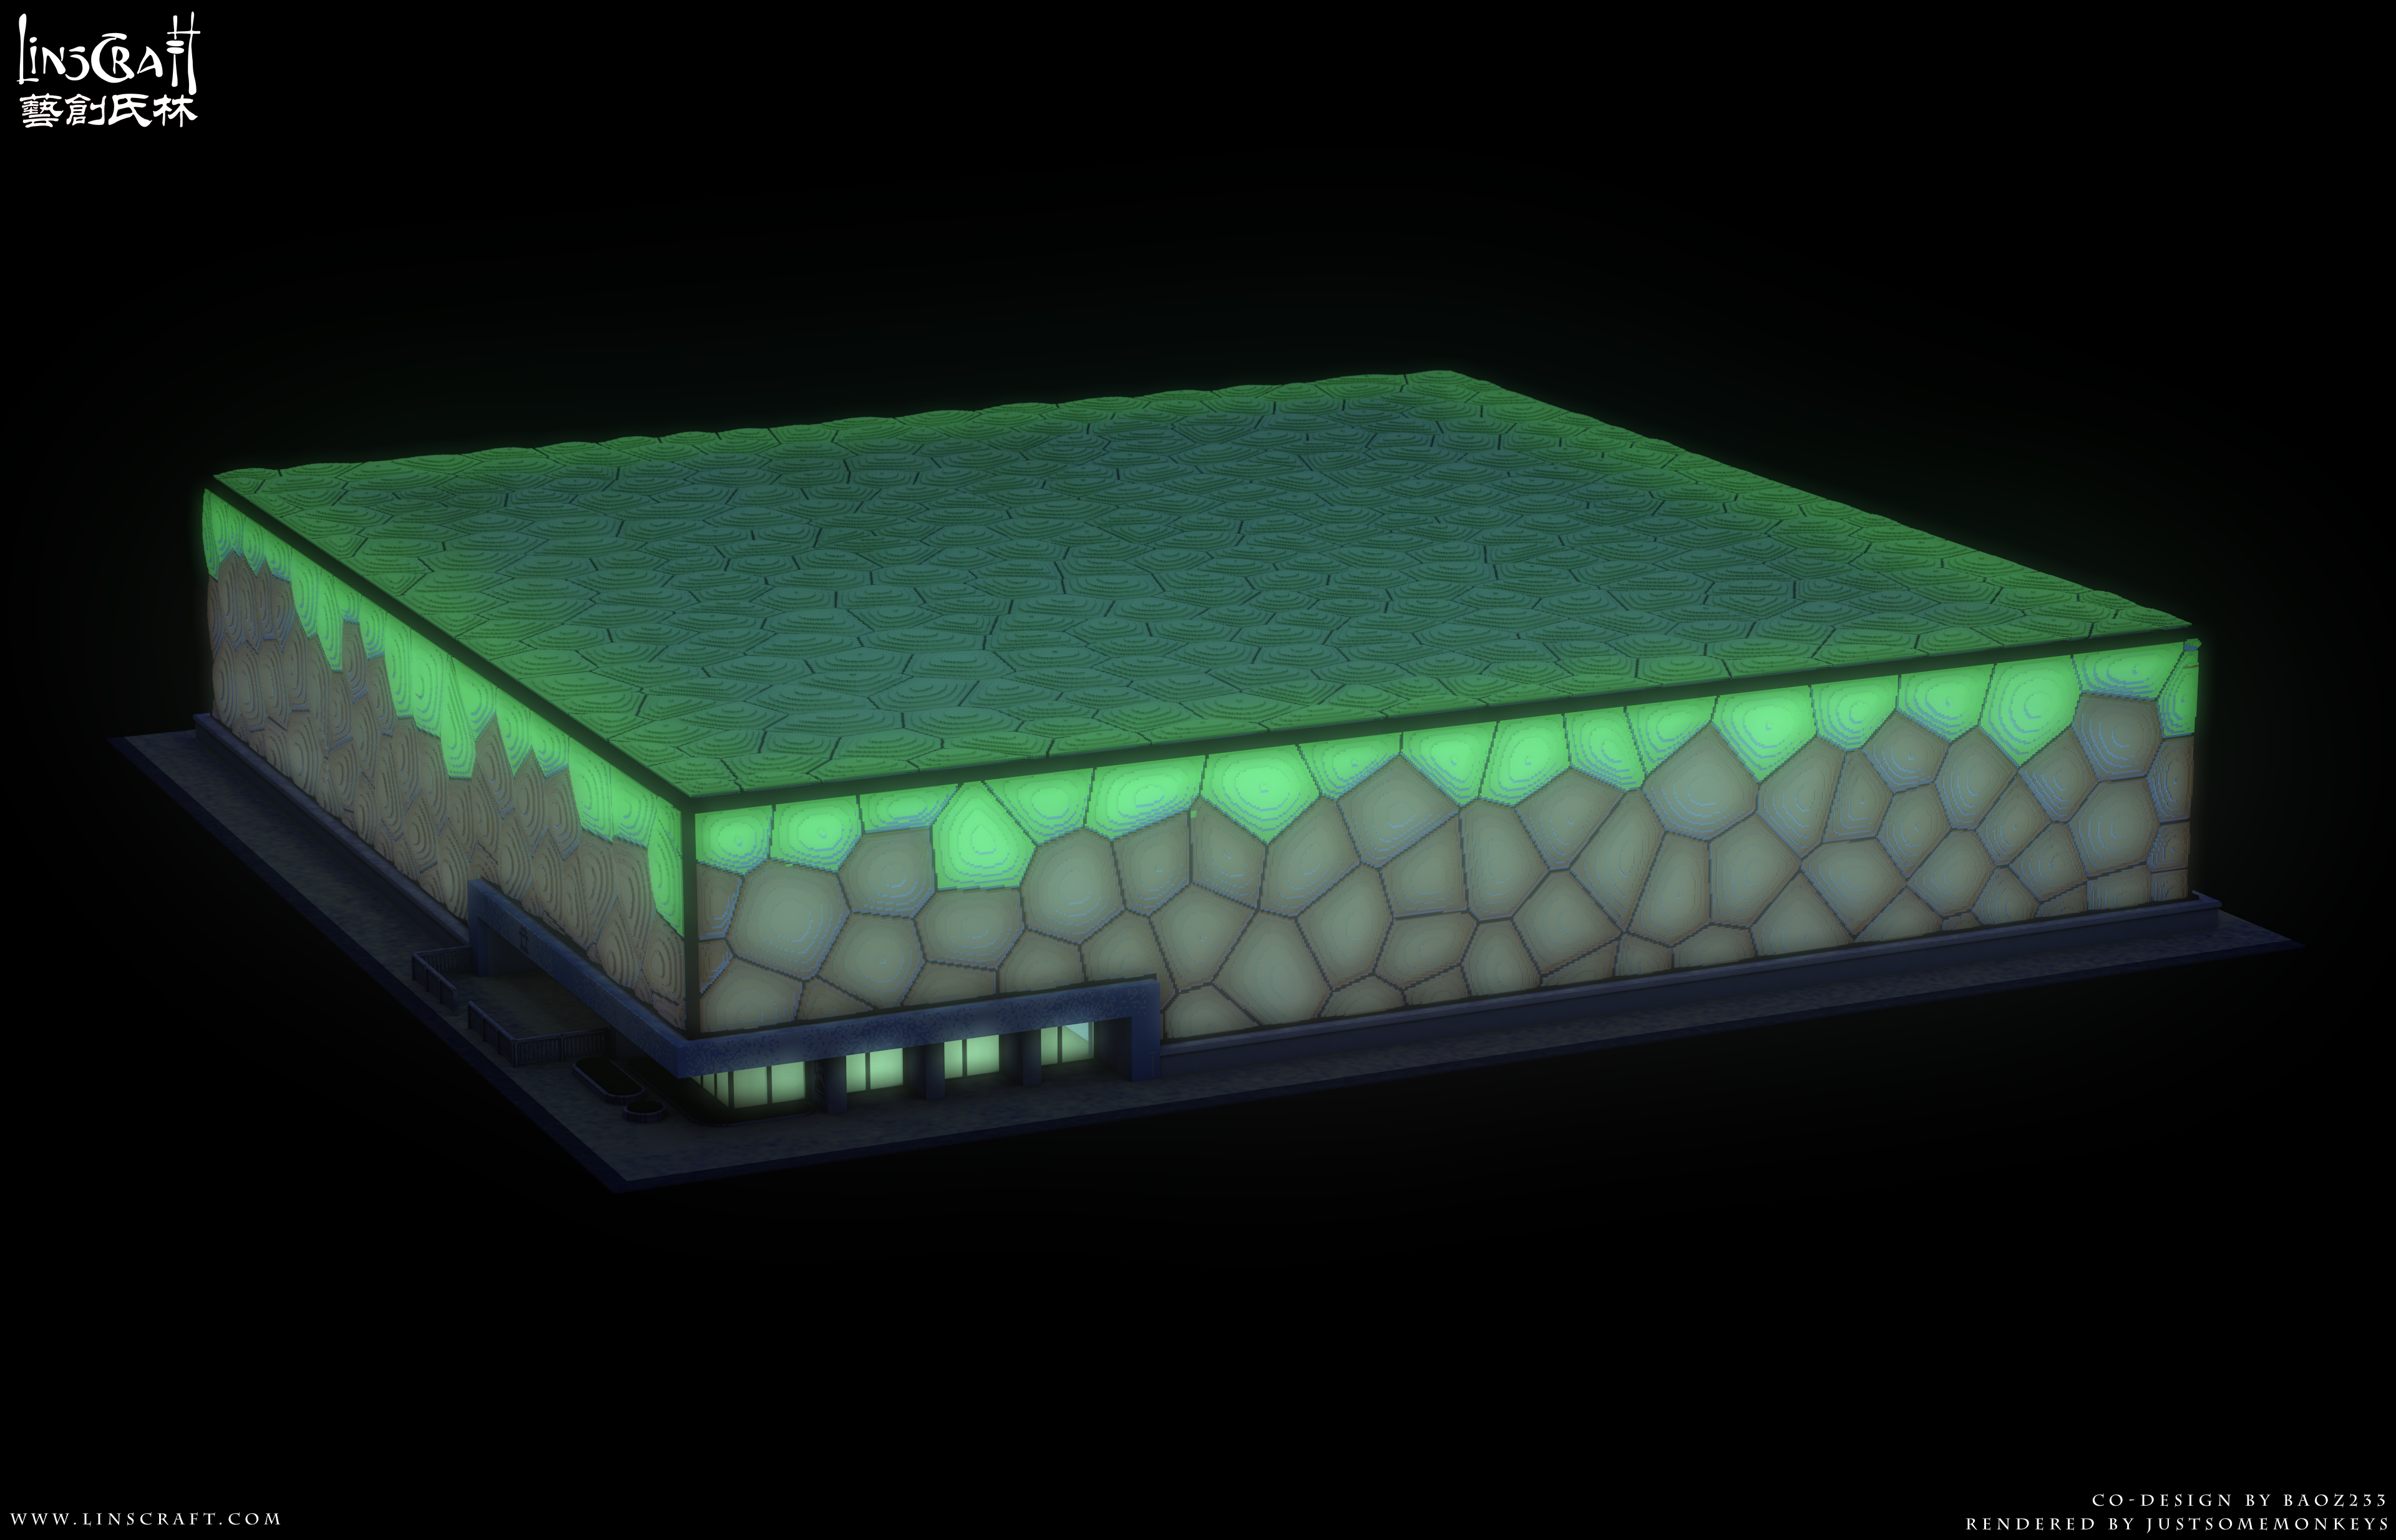 The Water Cube